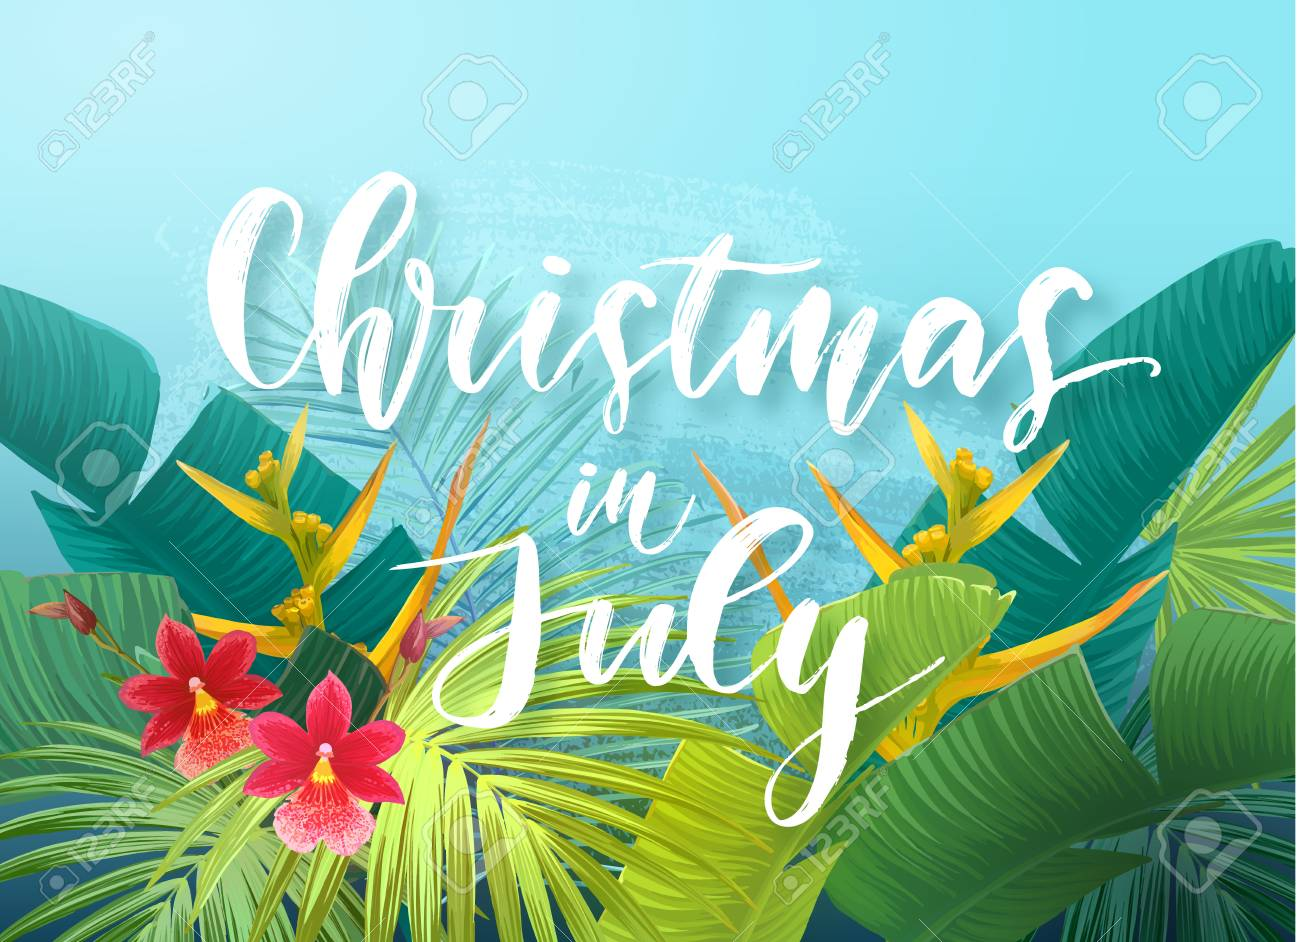 Christmas In July Sale Images.Christmas In July Sale Design With Tropical Royal Palm Leaves